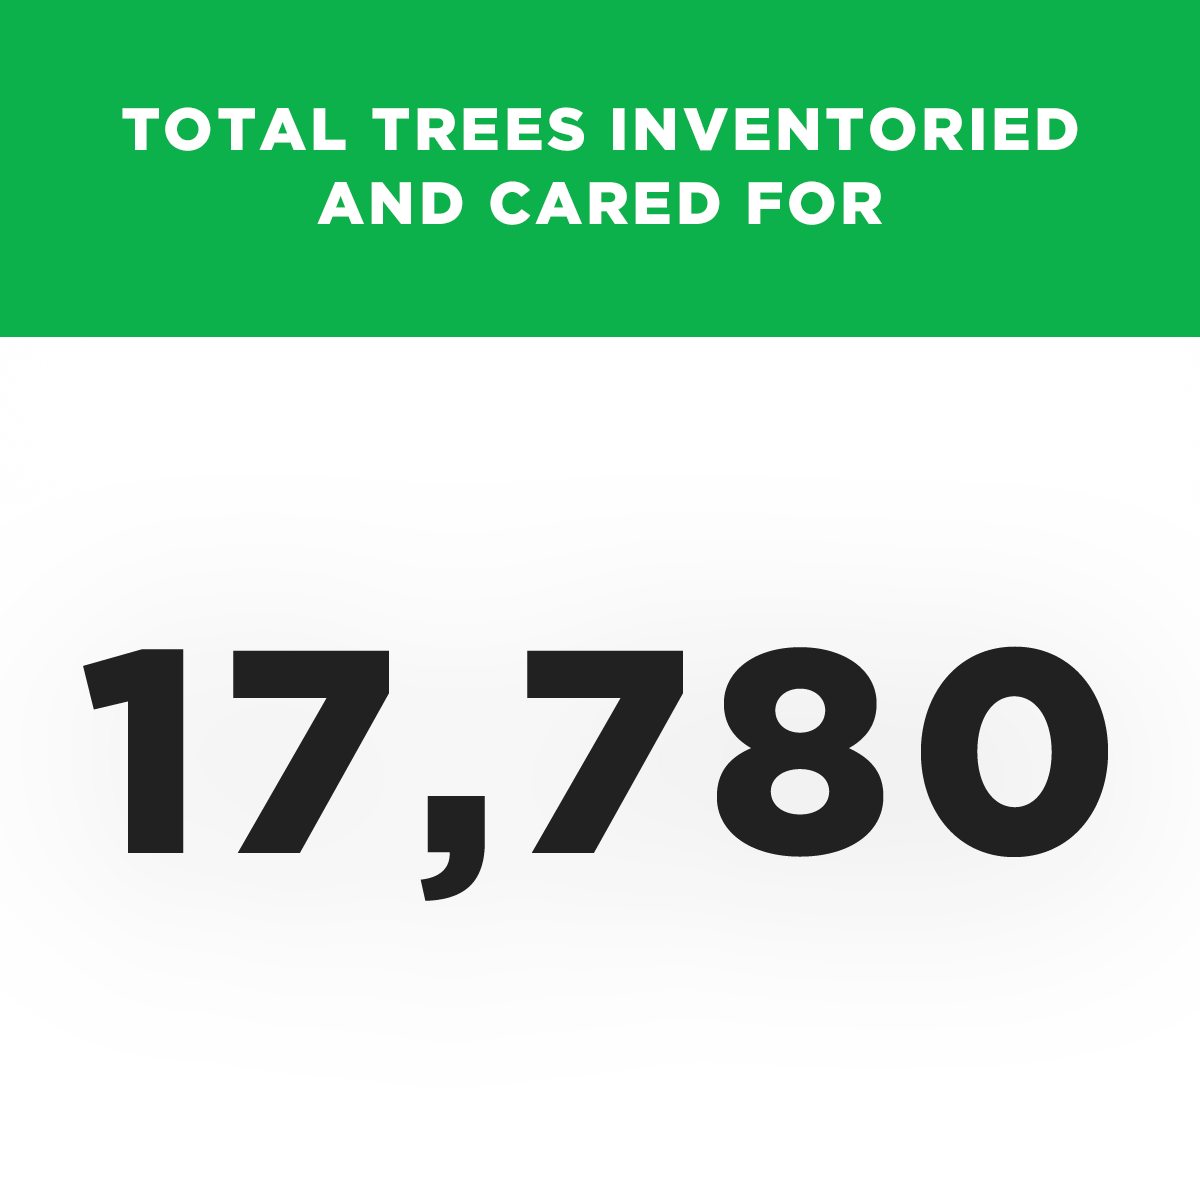 Total Trees Inventoried and Cared For - 17,780